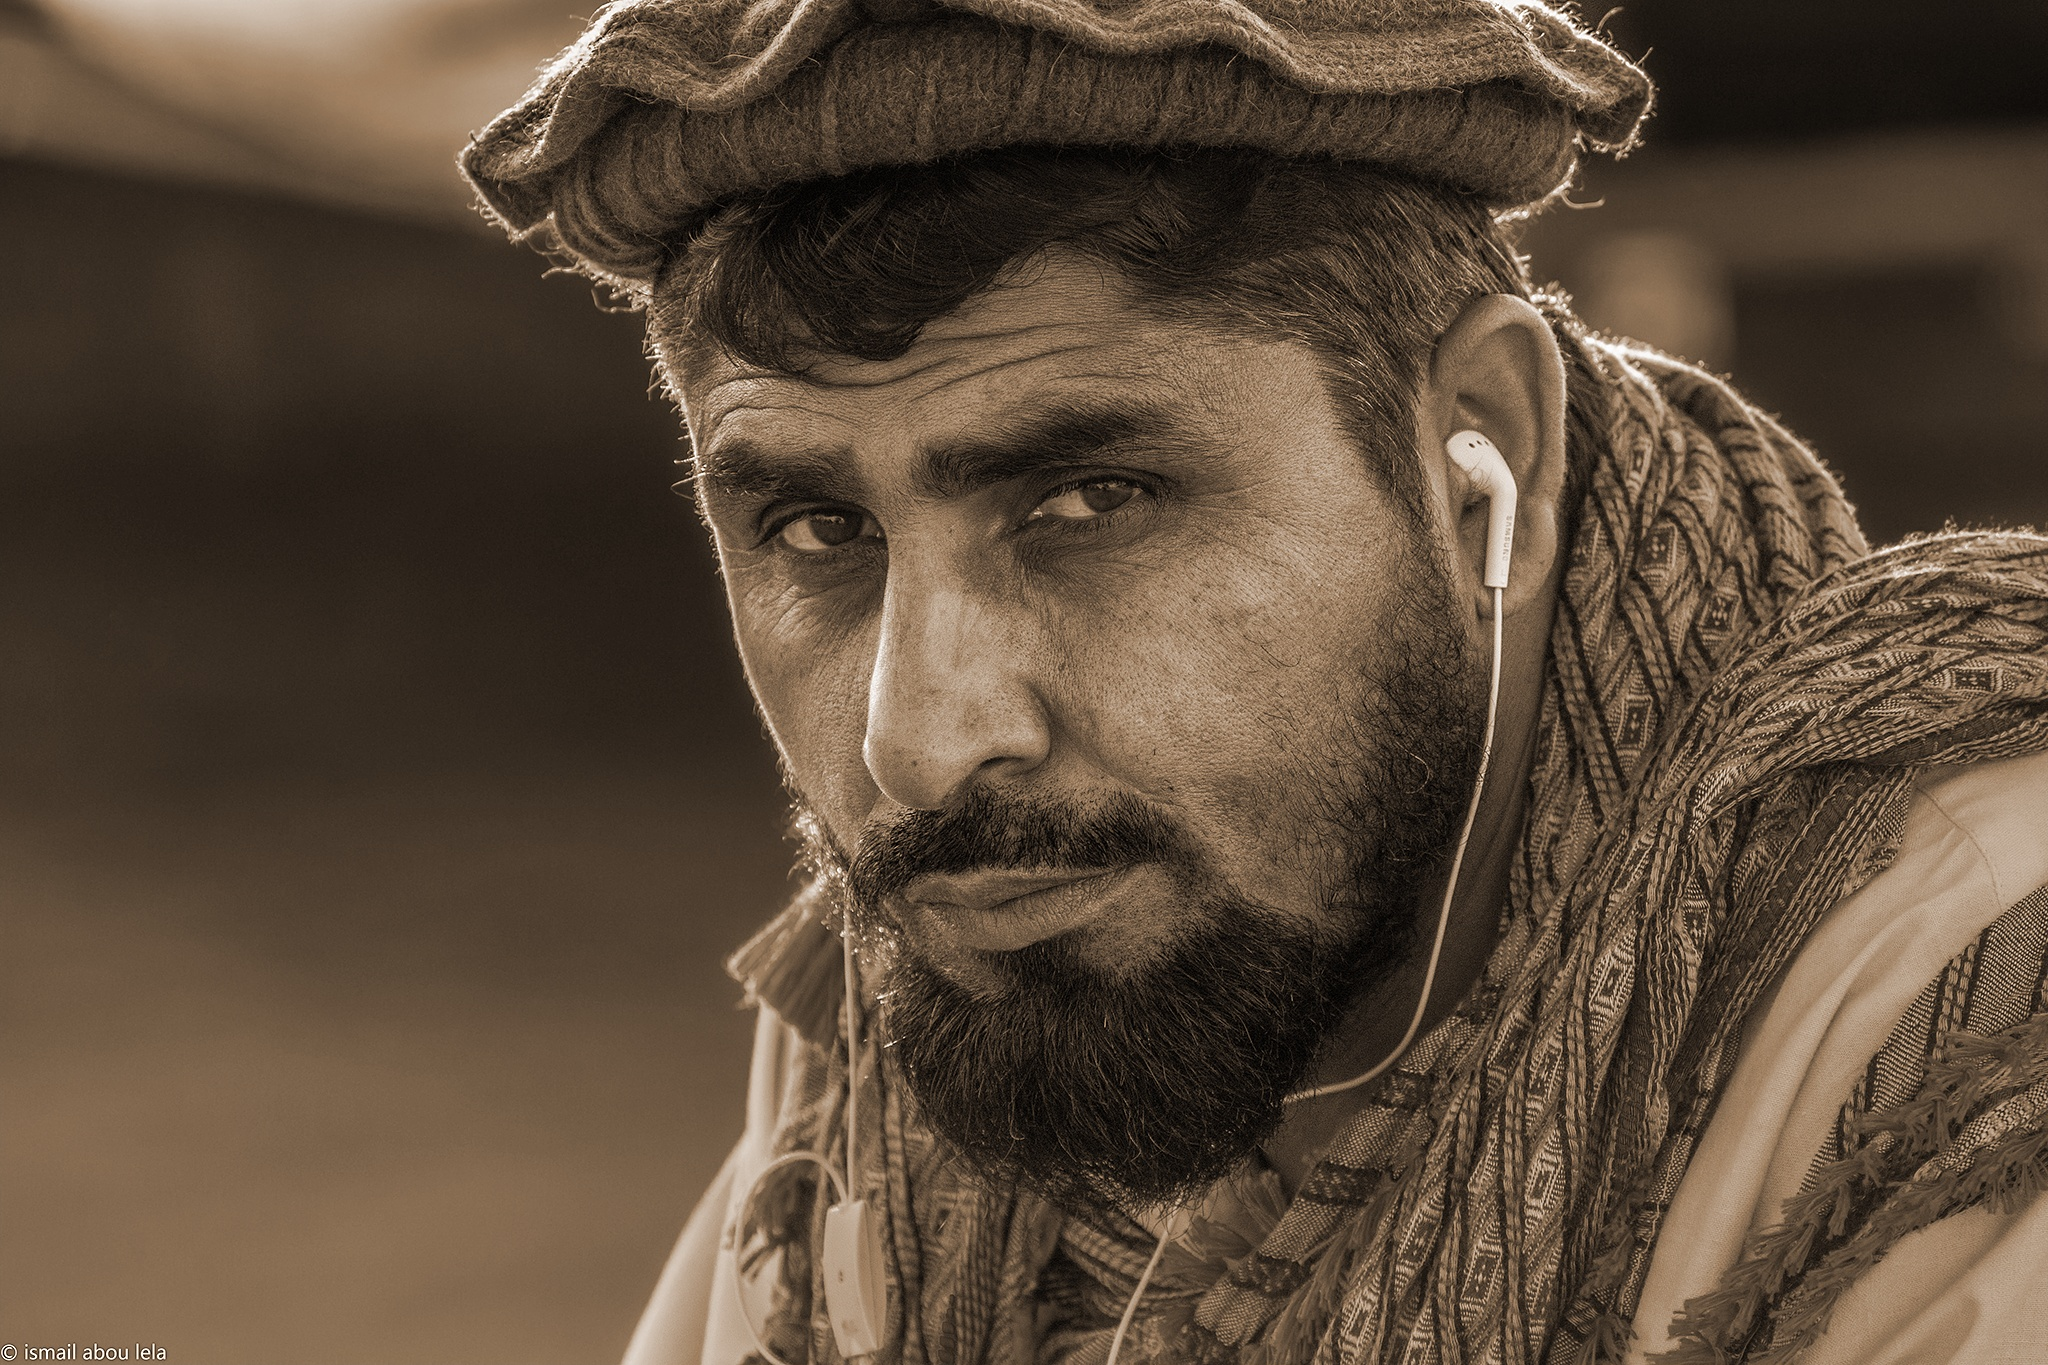 The Man by Ismail Abou Lela